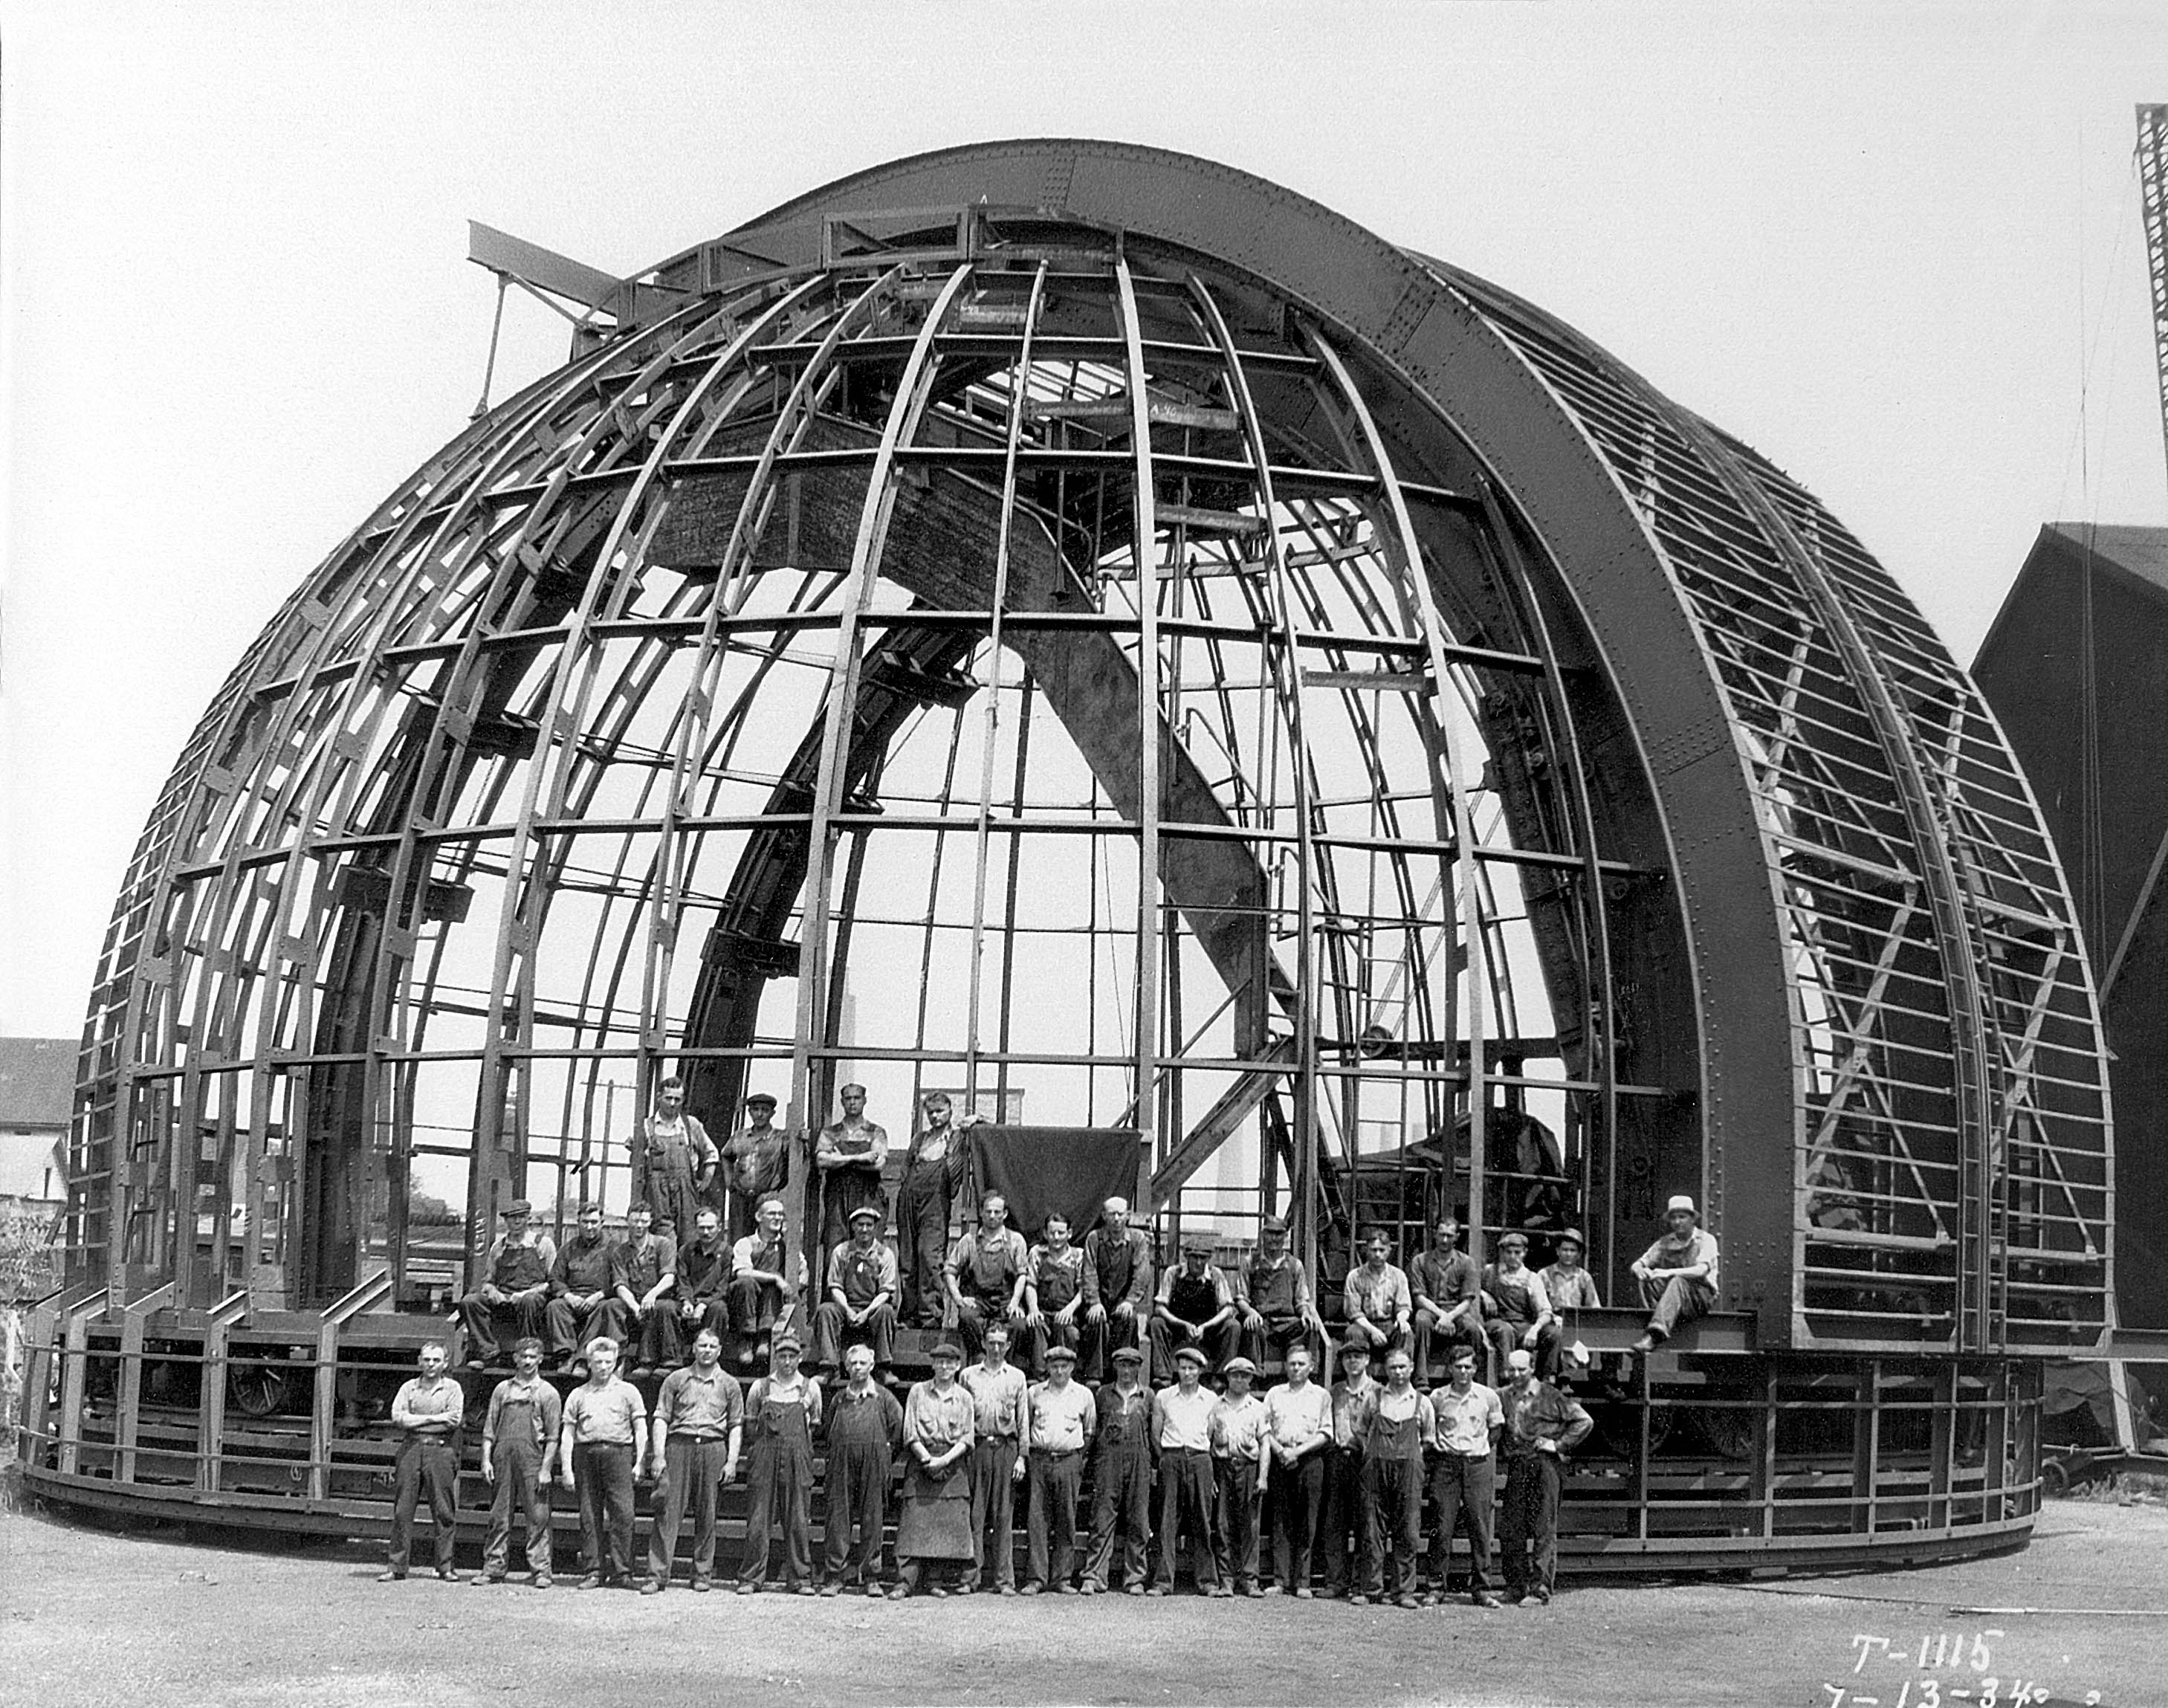 Construction on the telescope in 1933.